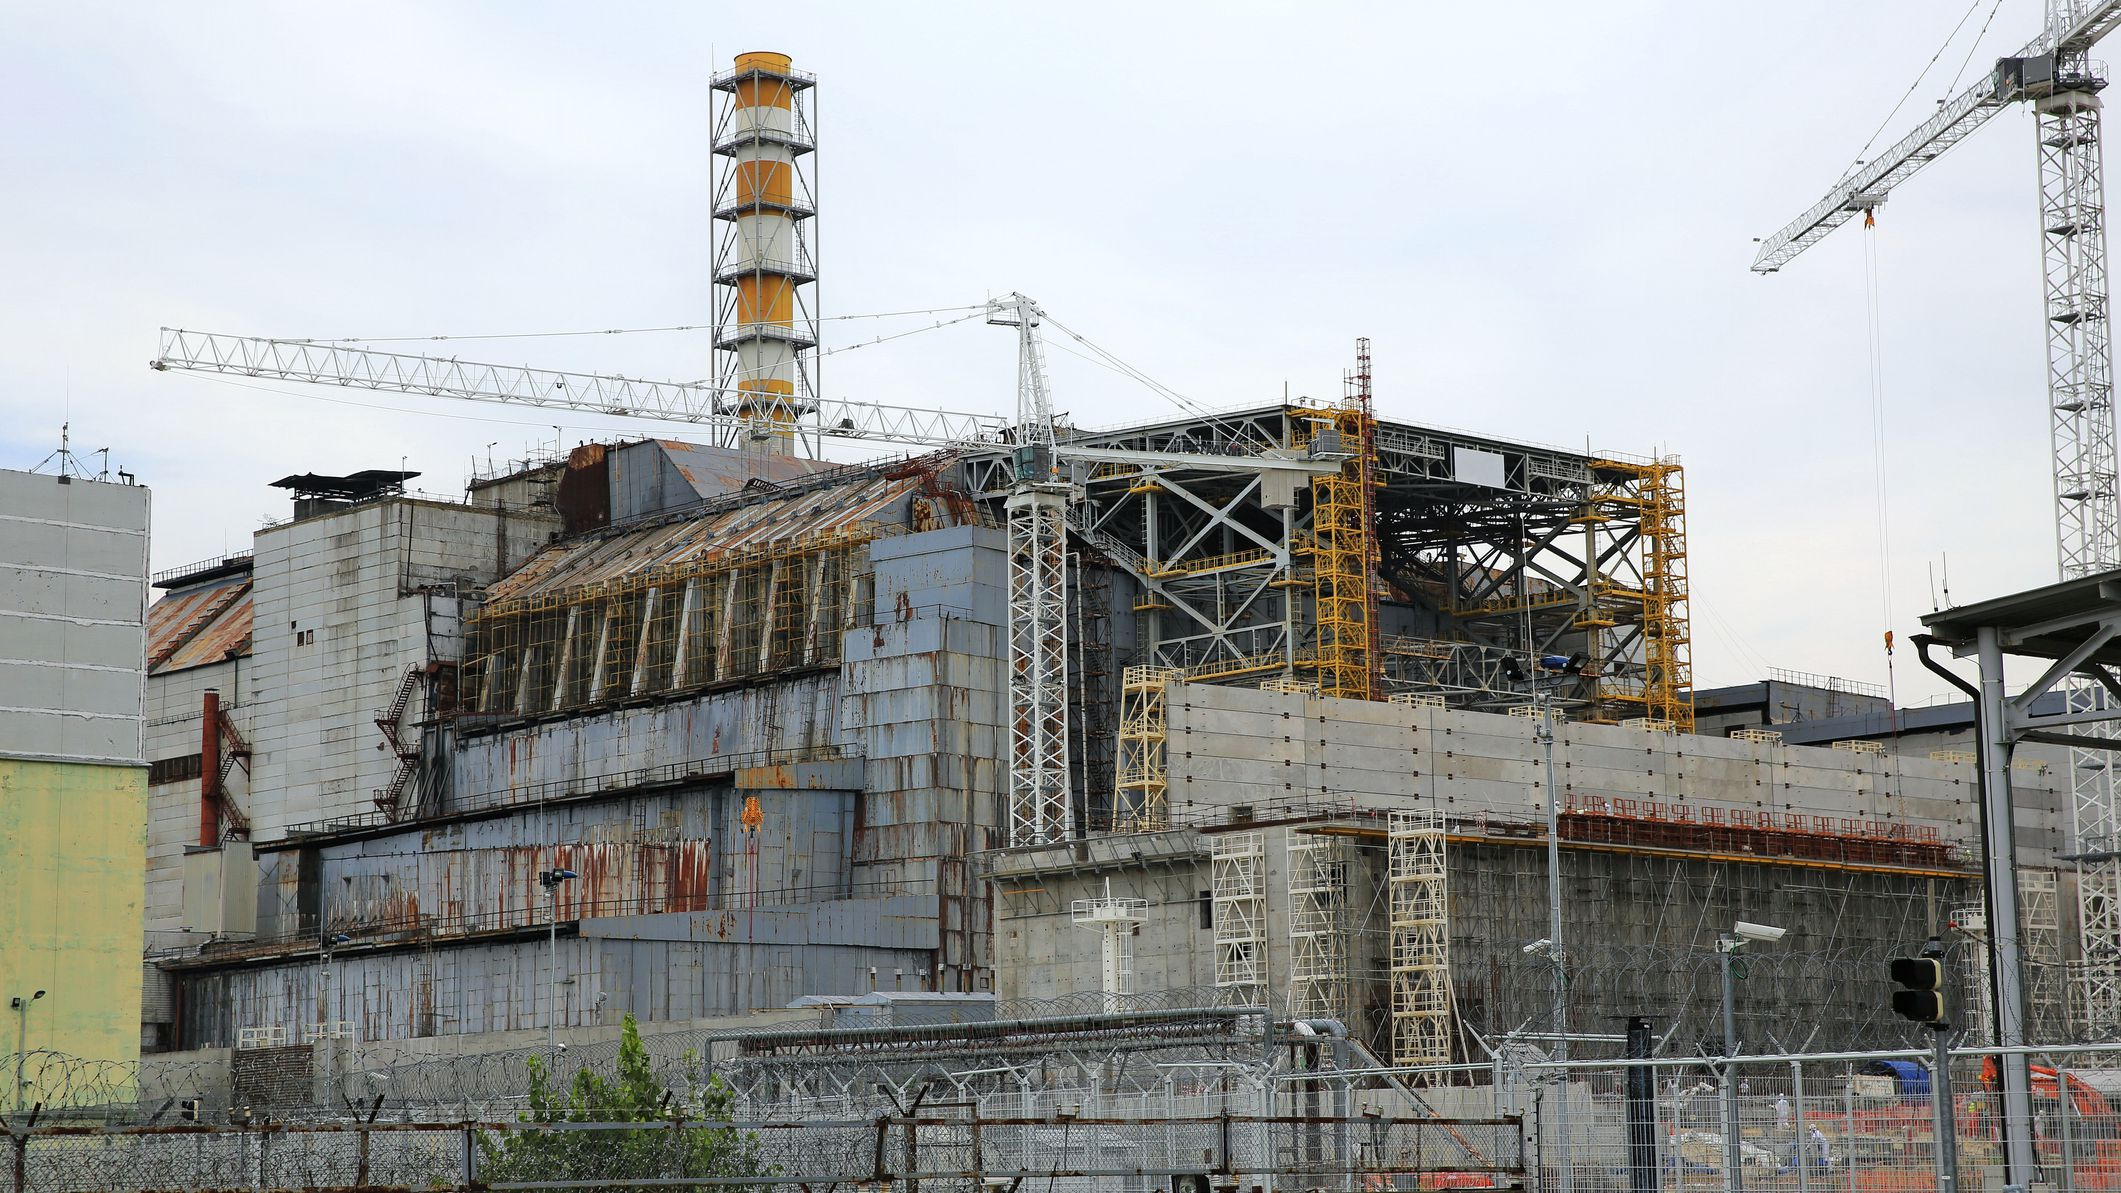 The Chernobyl Nuclear Station Part 1